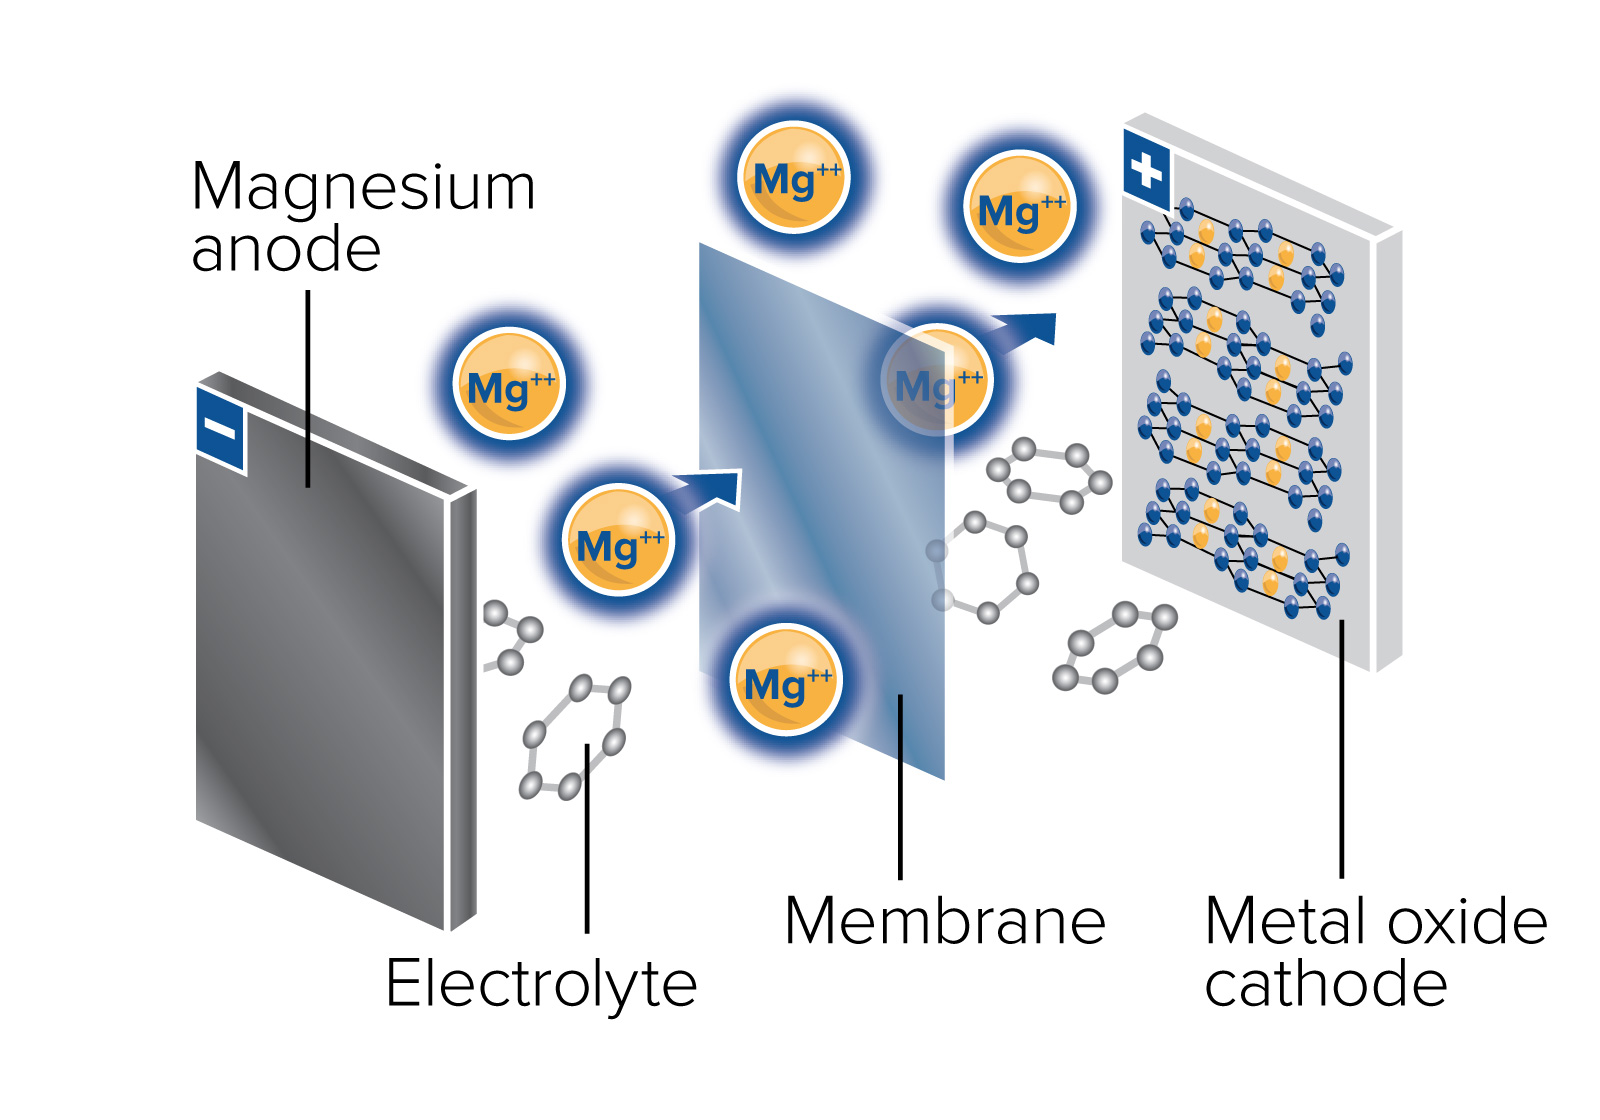 In multivalent batteries, JCESR scientists replace singly charged lithium ions, which are used in the lithium-ion battery, with doubly or triple charged working ions. This could increase the battery energy storage capacity by a factor of two or three and is attractive for transportation applications.